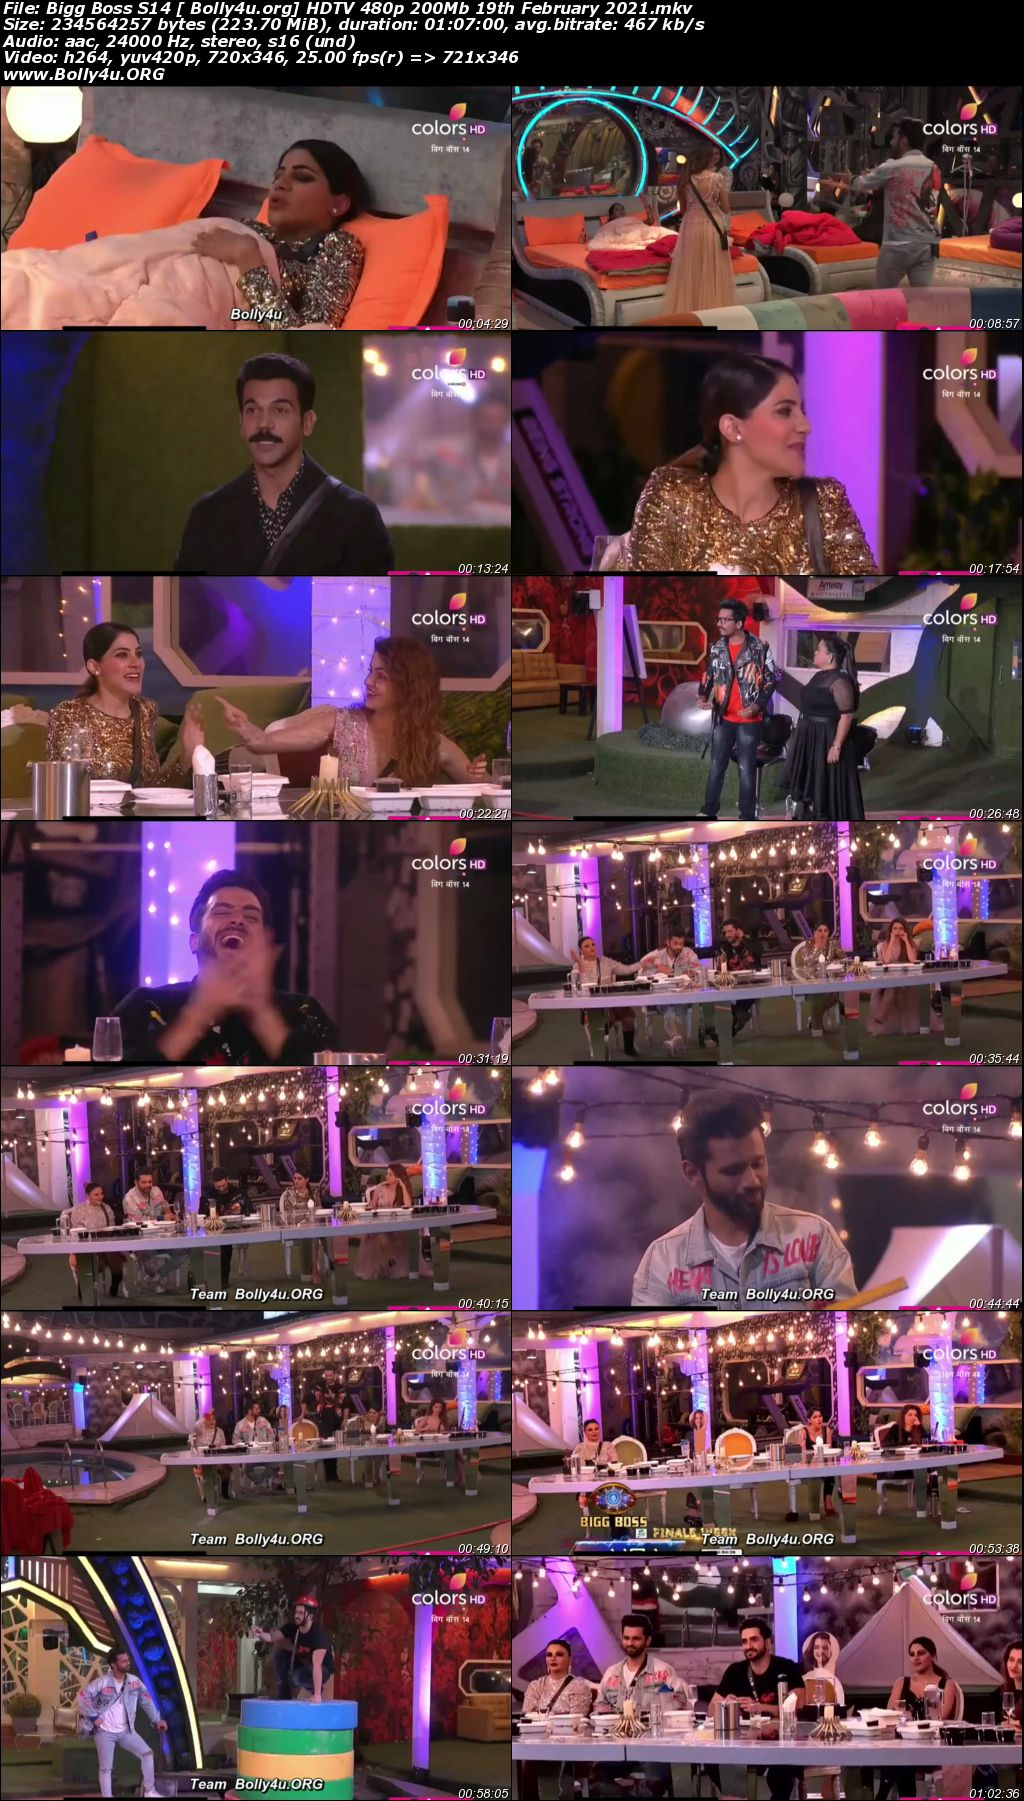 Bigg Boss S14 HDTV 480p 200Mb 19 February 2021 Download